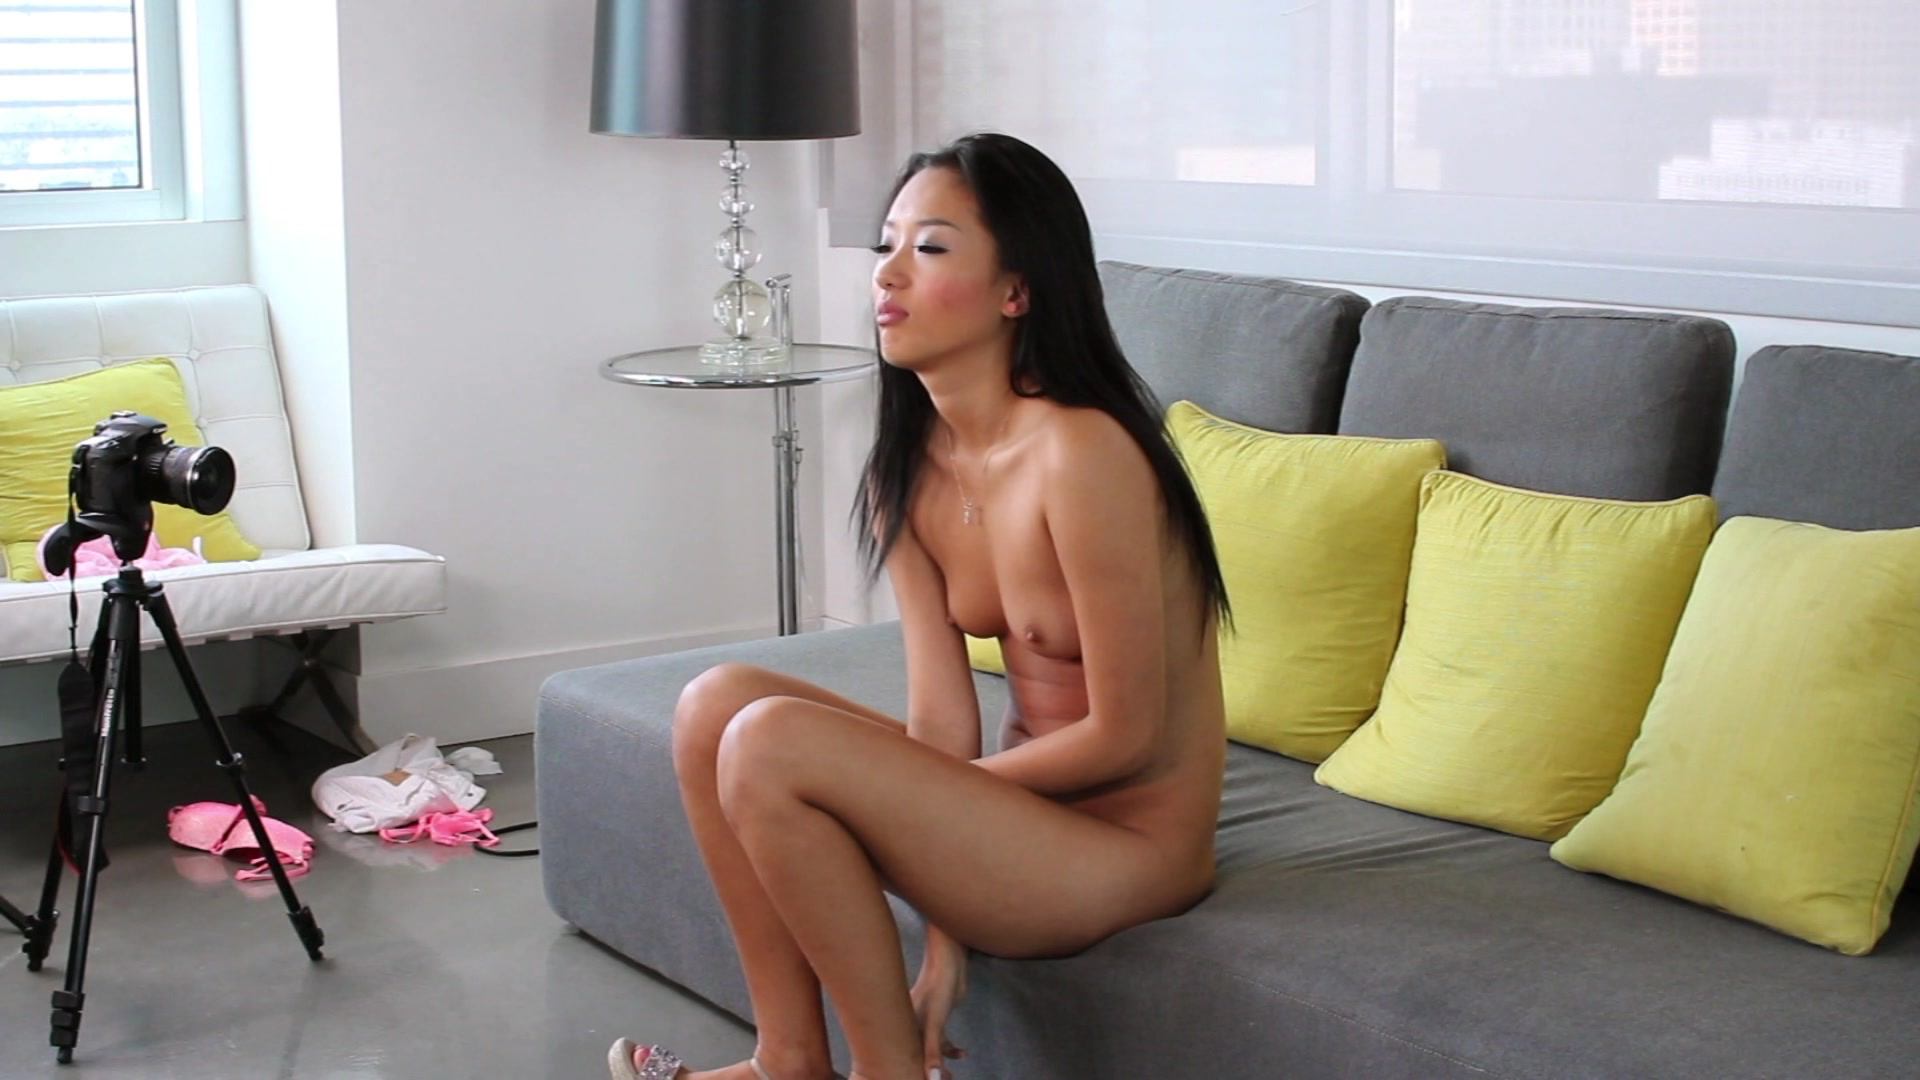 Casting Couch Amateurs 11 2014  Adult Dvd Empire-1950